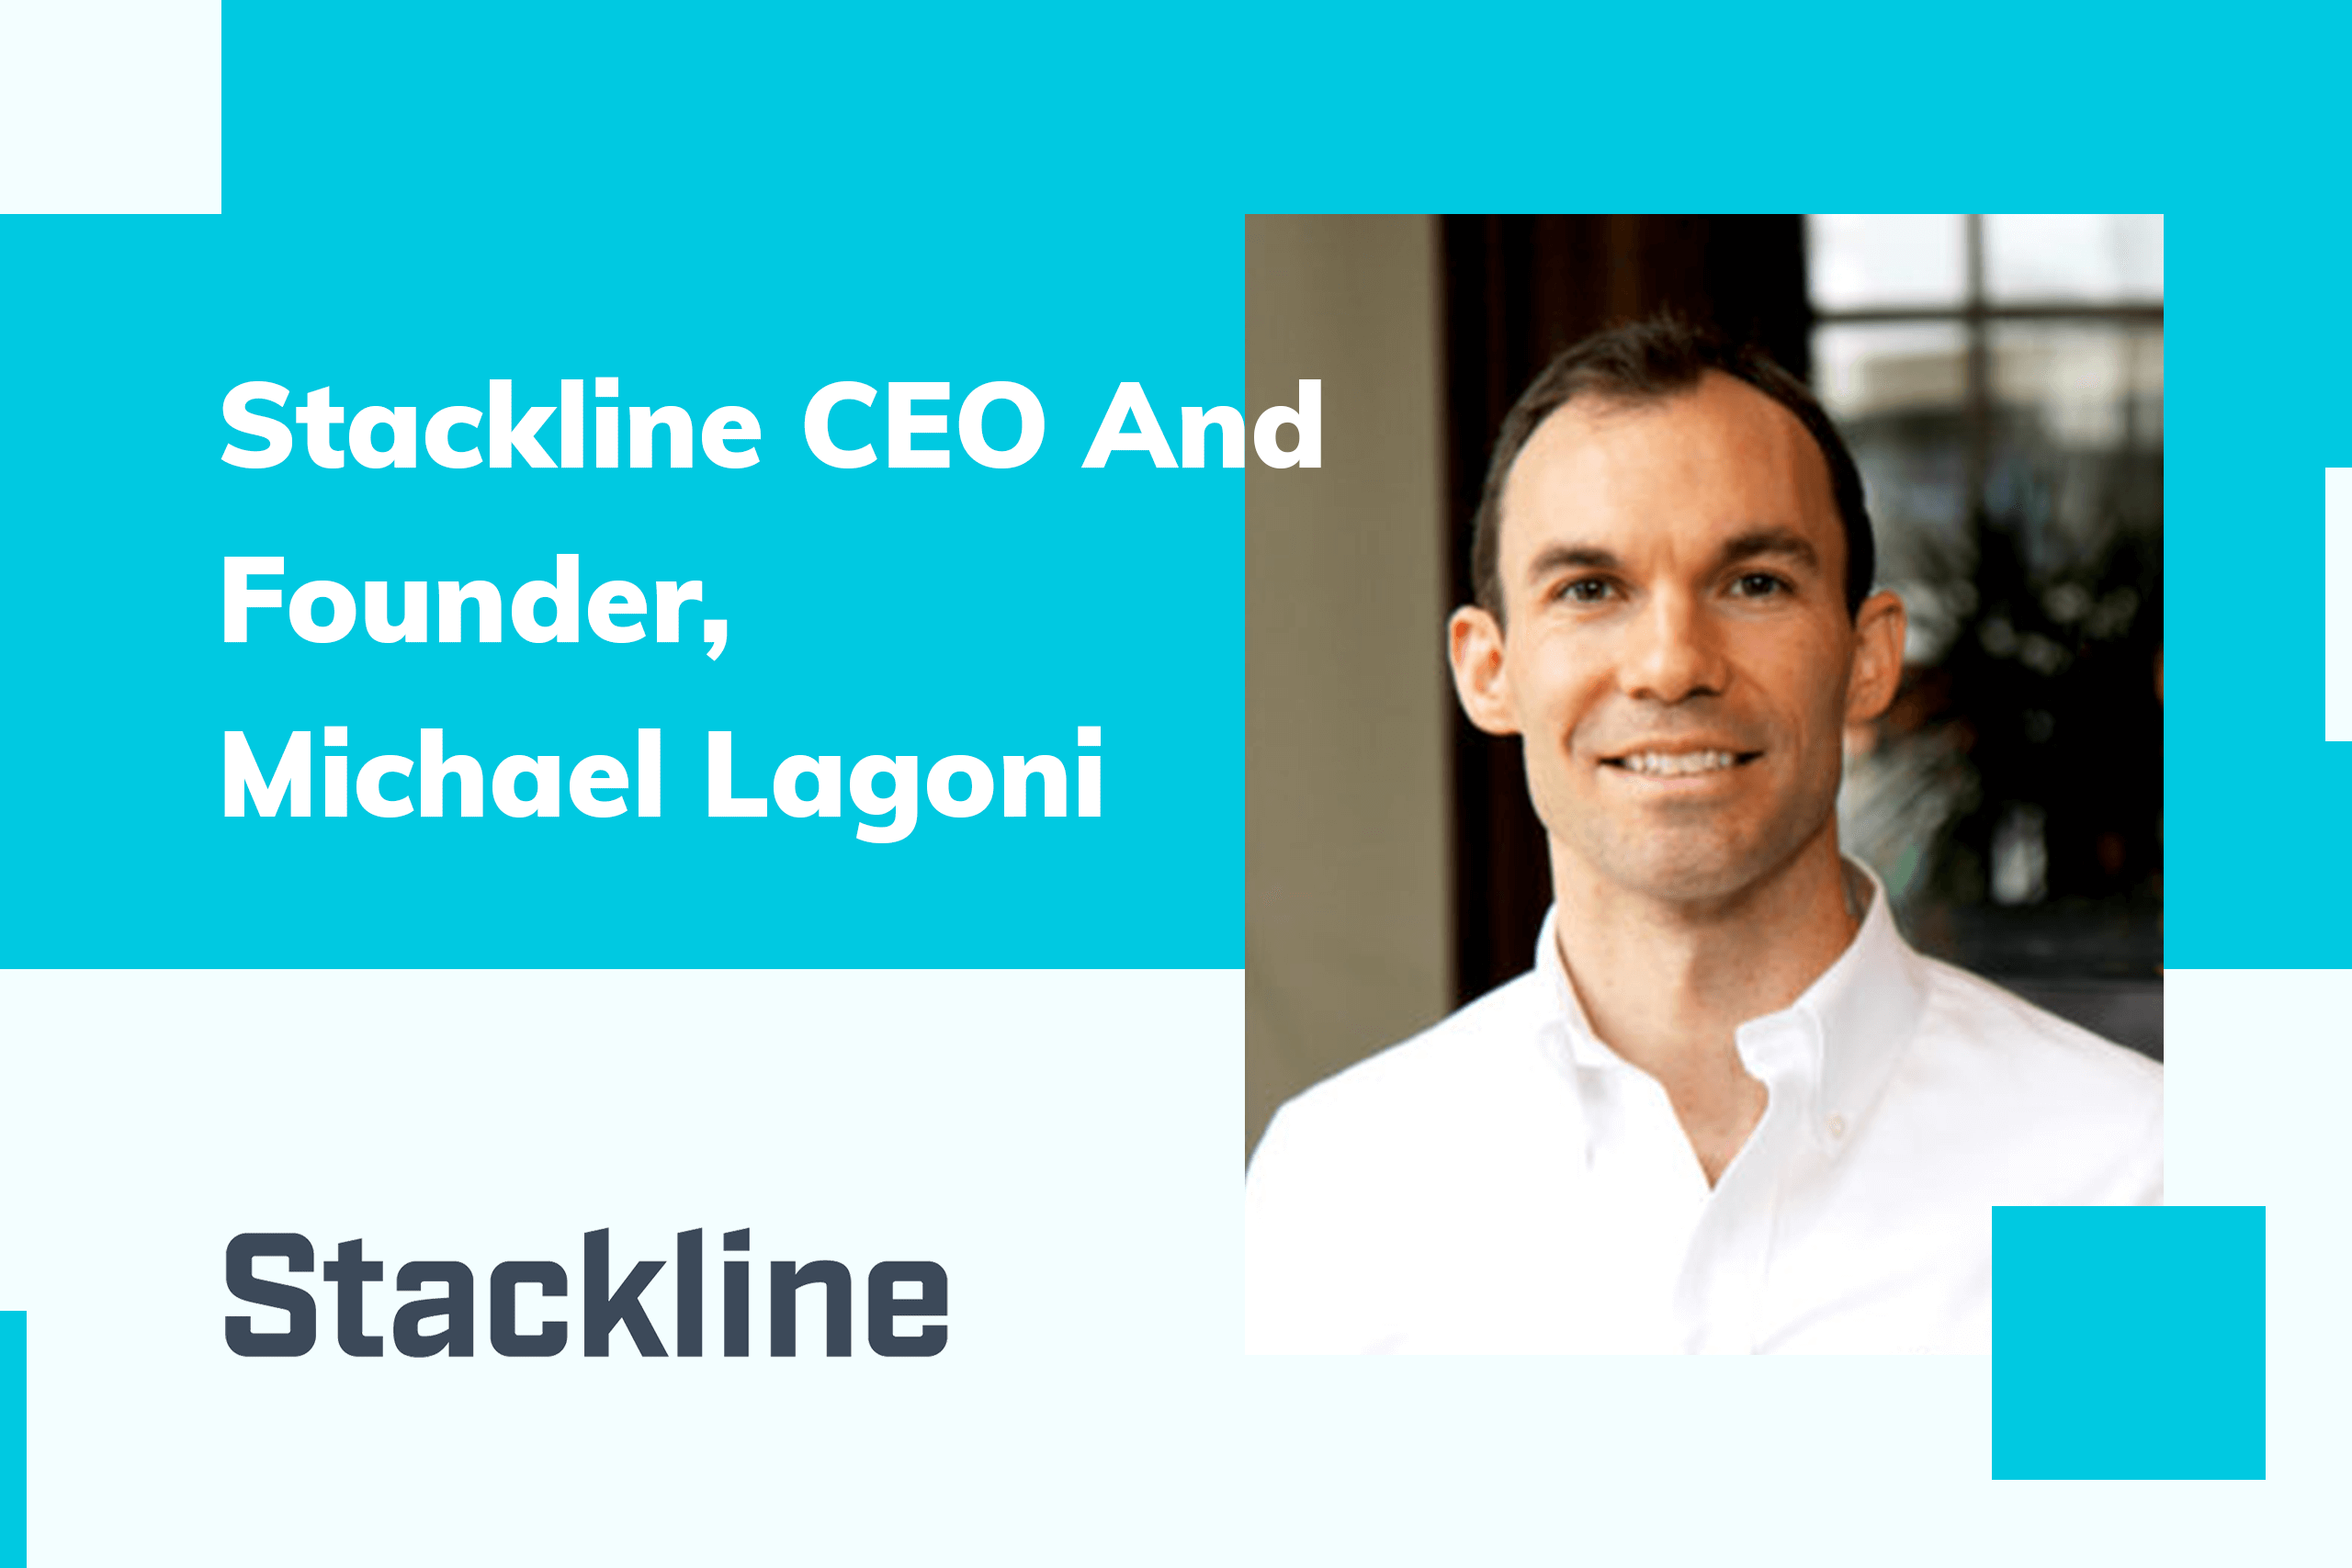 Stackline CEO And Founder, Michael Lagoni